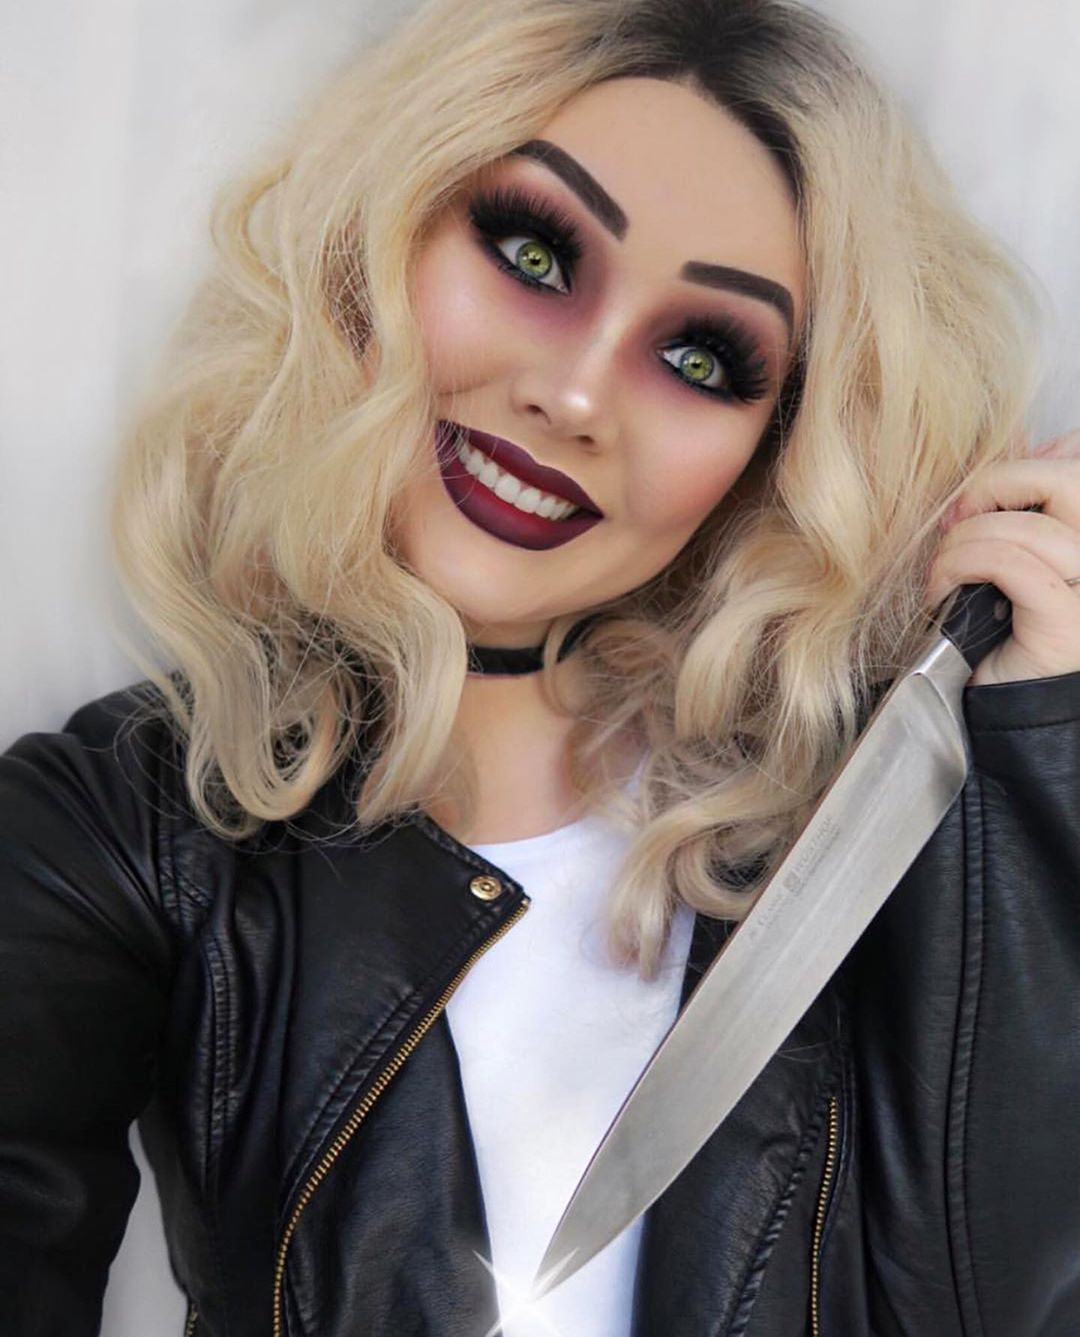 Pin By Halloween Makeup On Make Up In 2020 Bride Of Chucky Makeup Halloween Makeup Diy Easy Bride Of Chucky Halloween